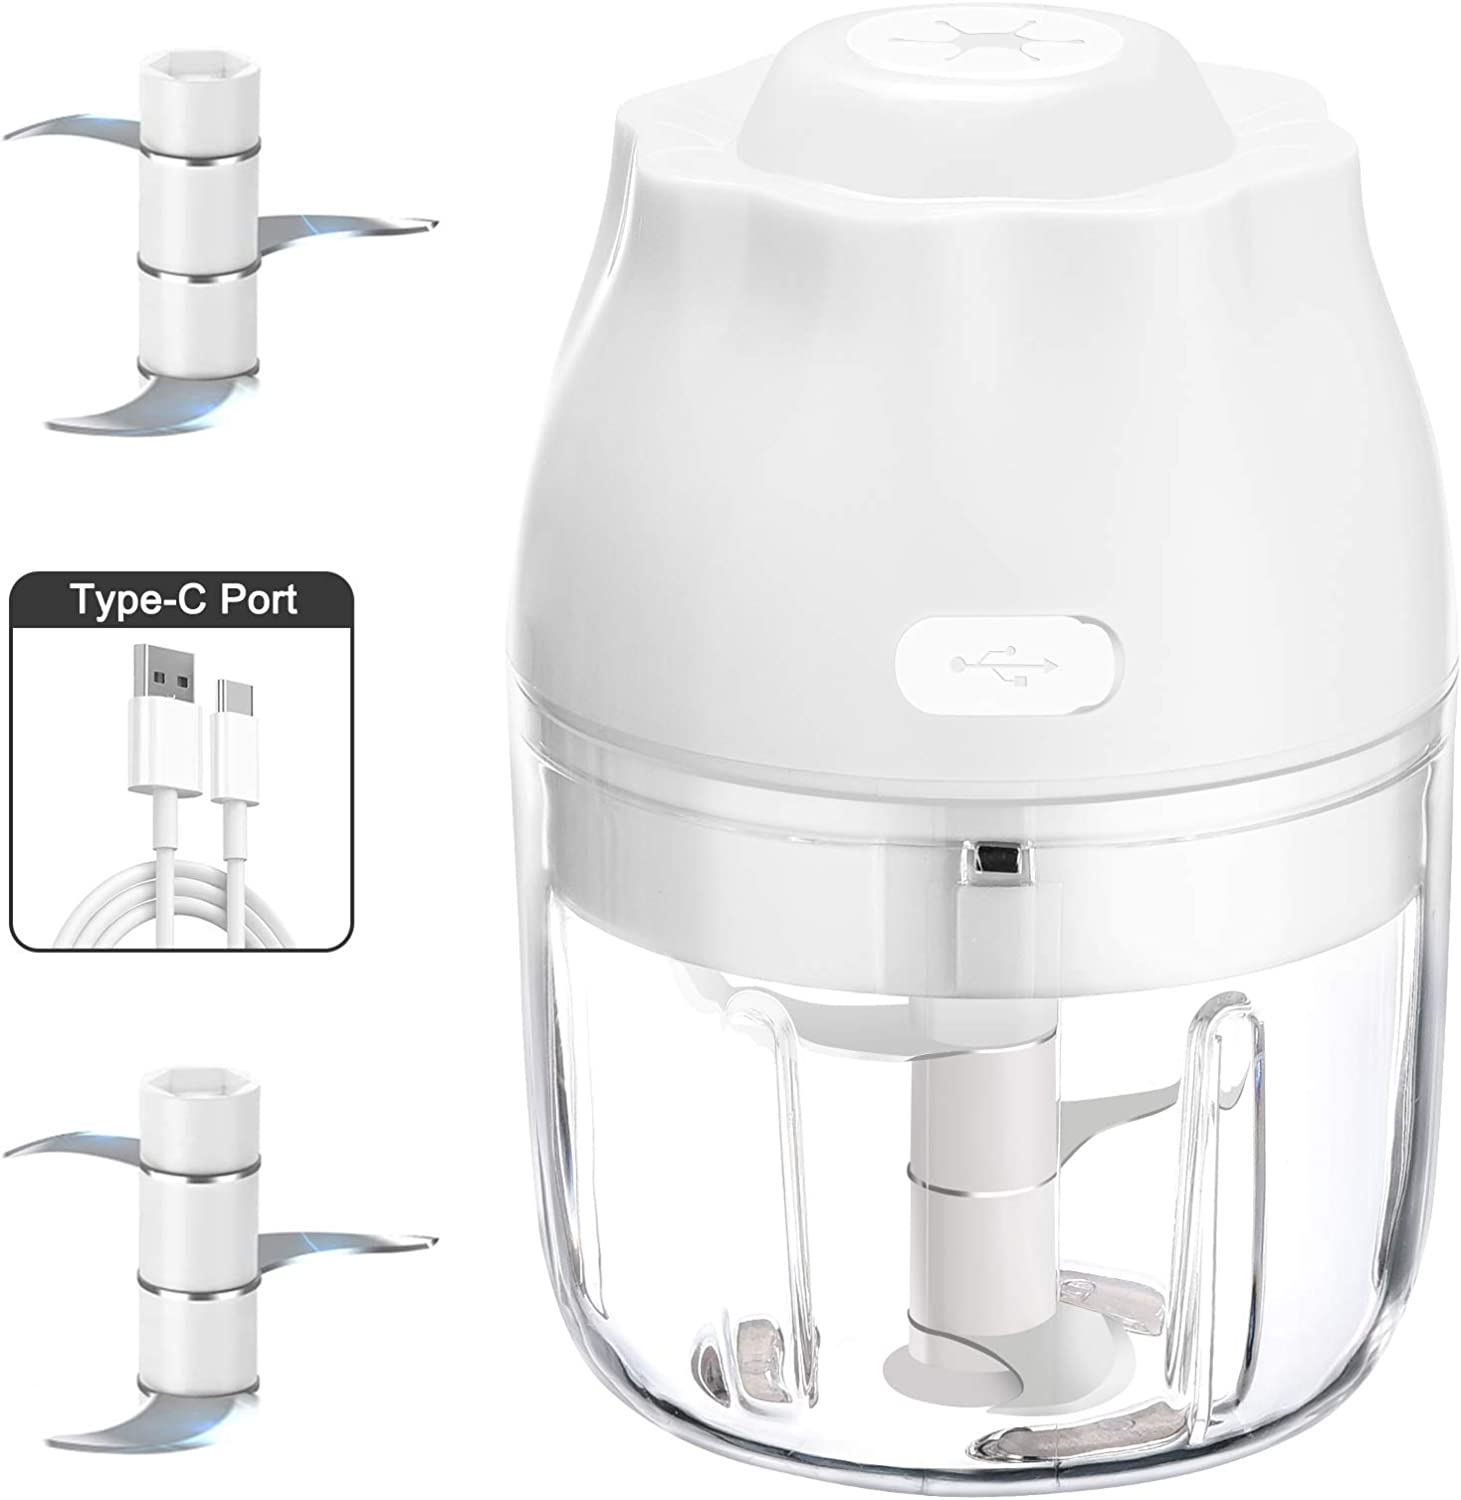 Electric Mini Garlic Chopper, Garlic Press With USB Charging, Vegetable and Garlic Mincer, Mini Food Processor For Onions/Chili/Meat/Nuts/Ginger/Baby Food -250ML(White)